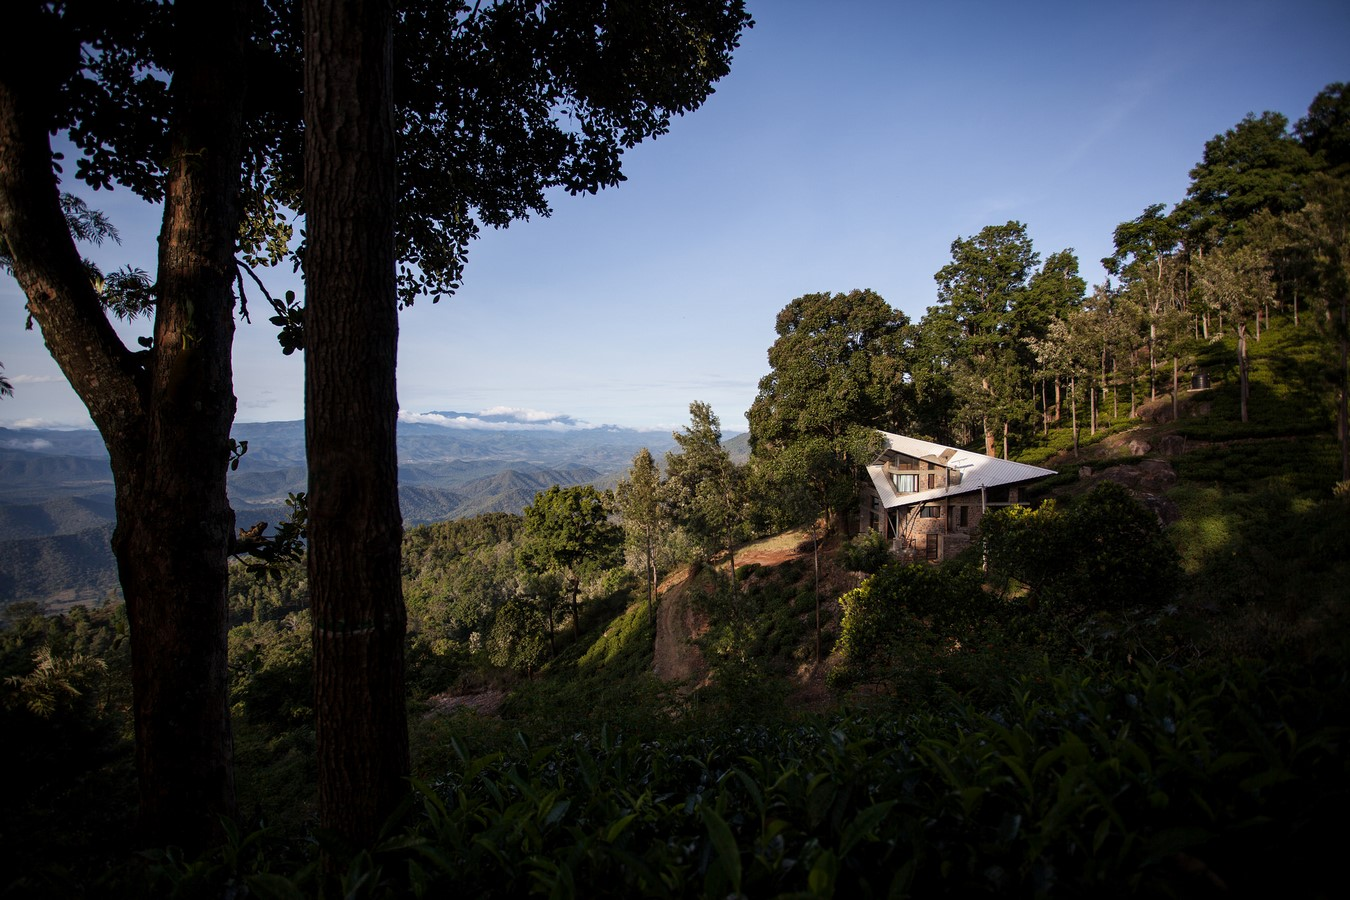 Hornbill House at Oland Estate by Chitra Vishwanath: End of the road property - Sheet1